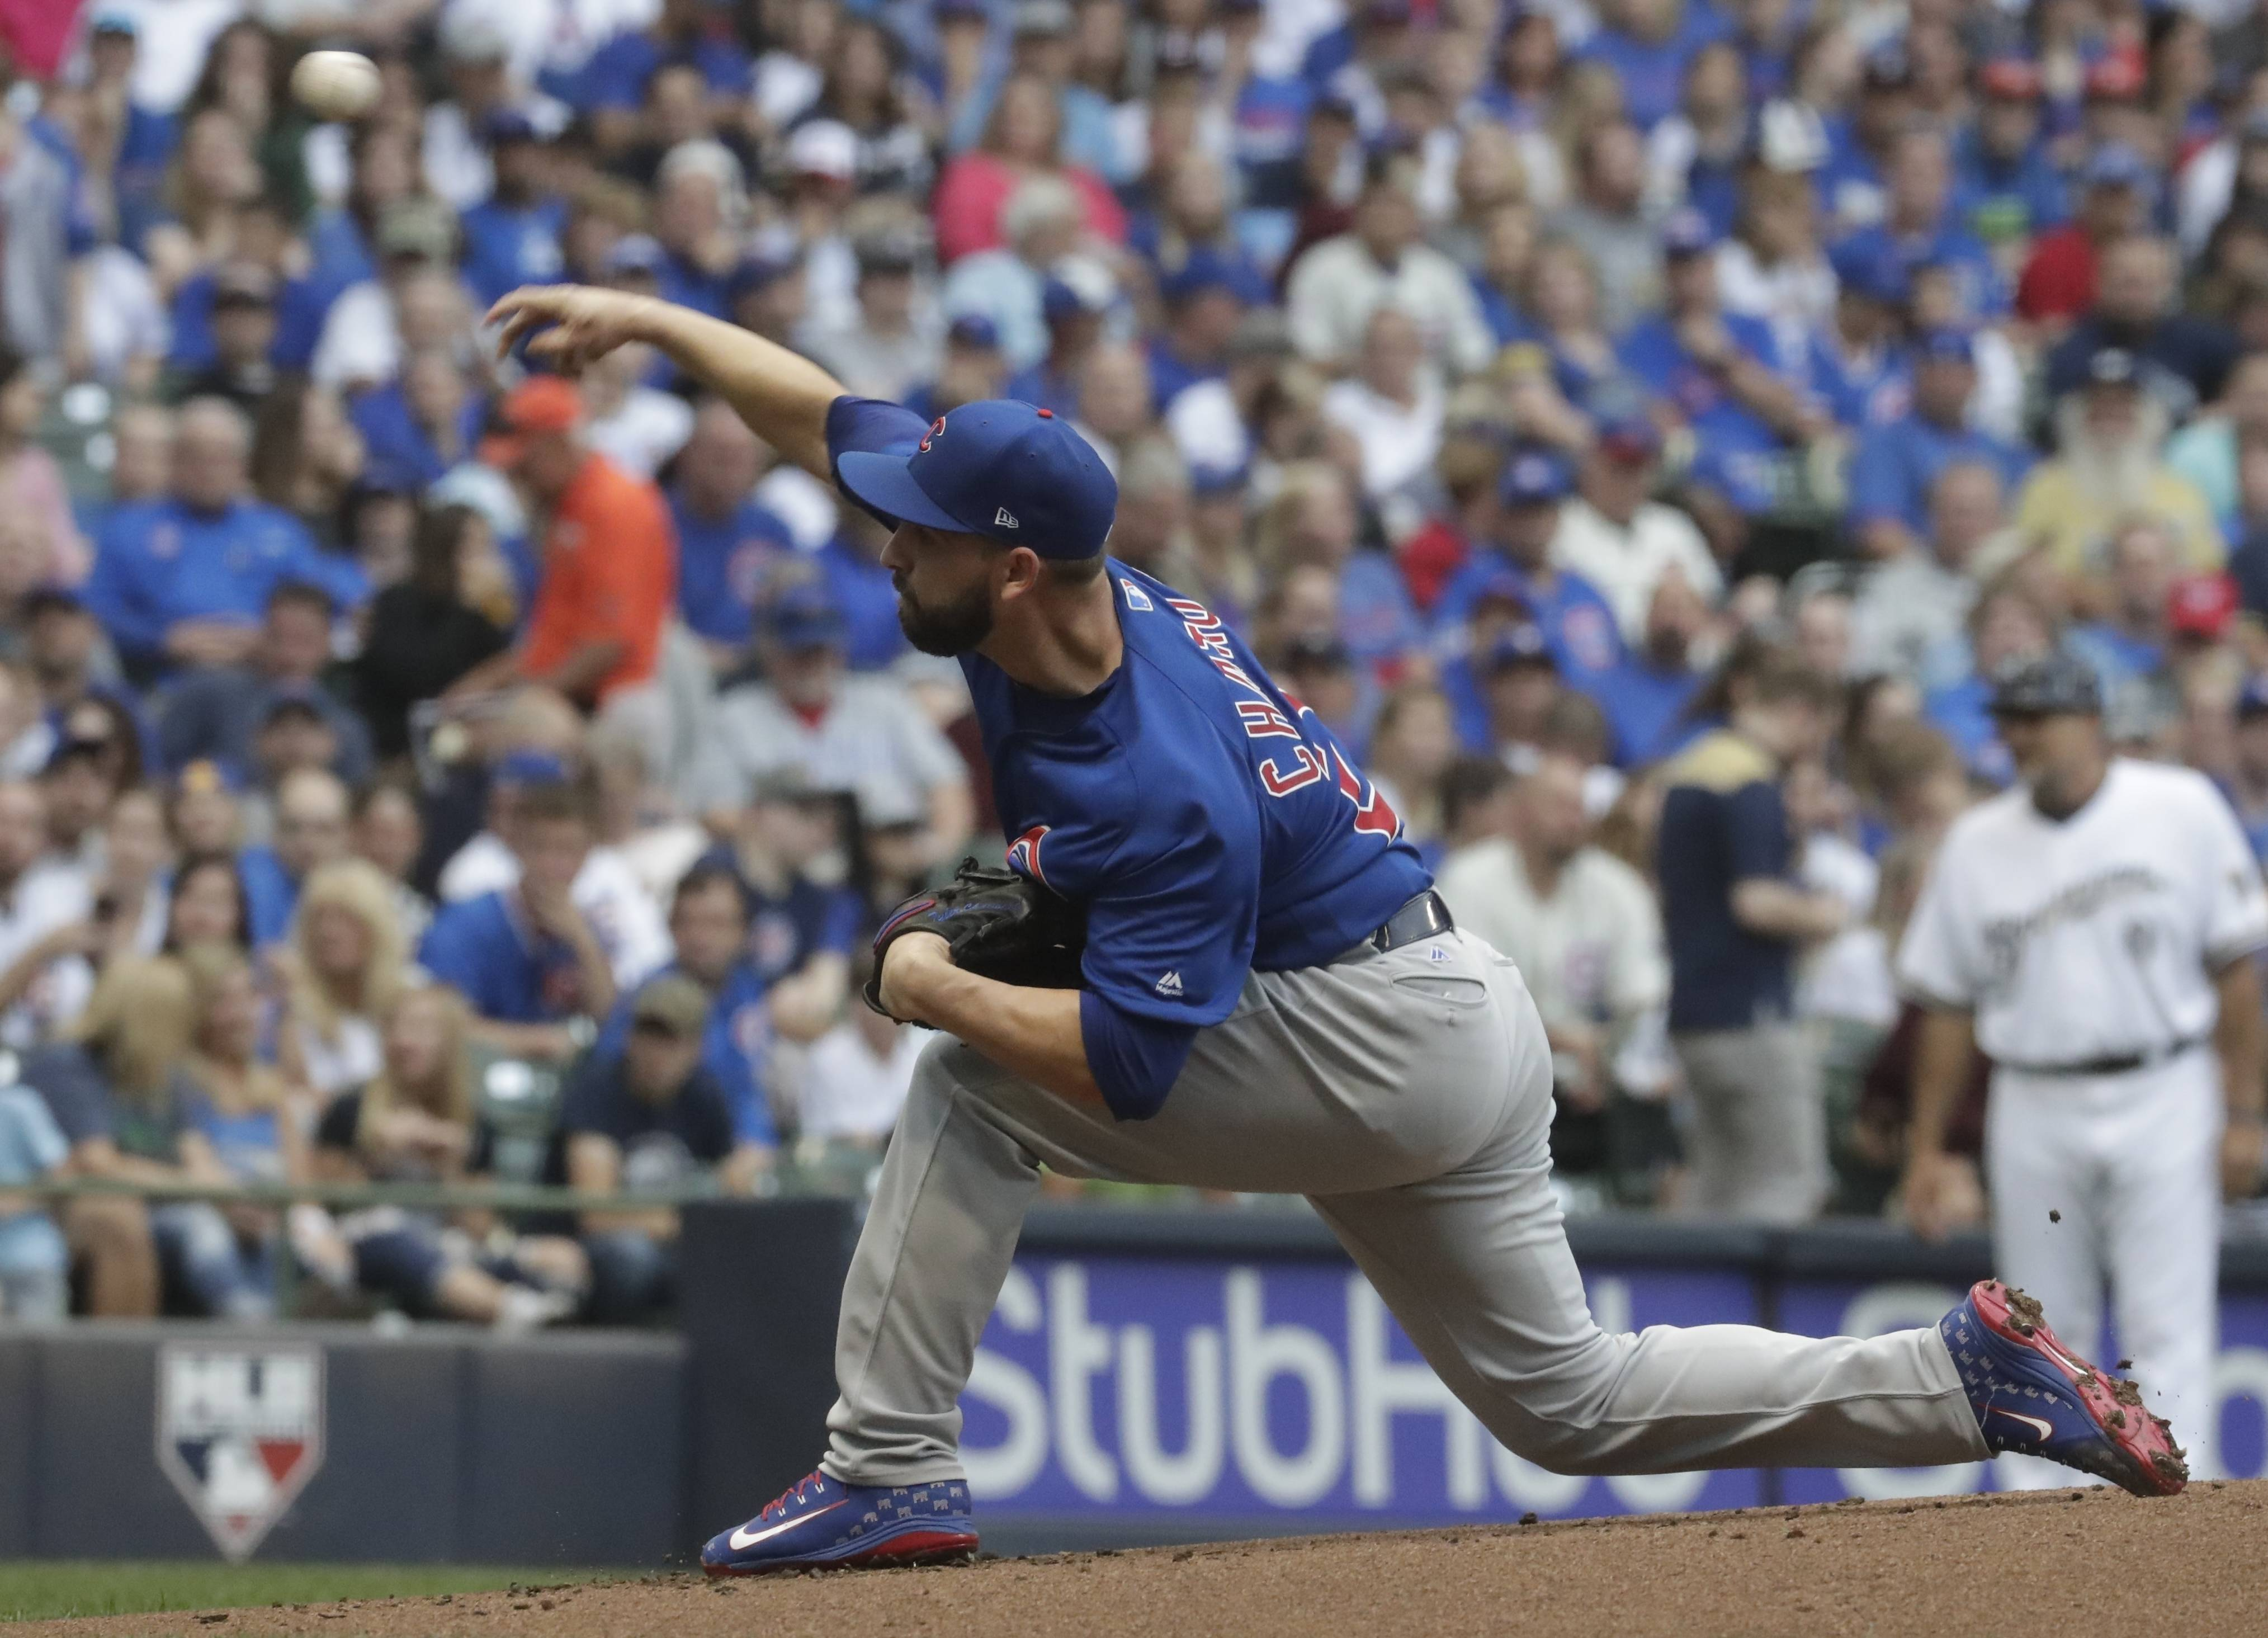 Chicago Cubs starting pitcher Tyler Chatwood throws during the first inning of a baseball game against the Milwaukee Brewers Tuesday, June 12, 2018, in Milwaukee.